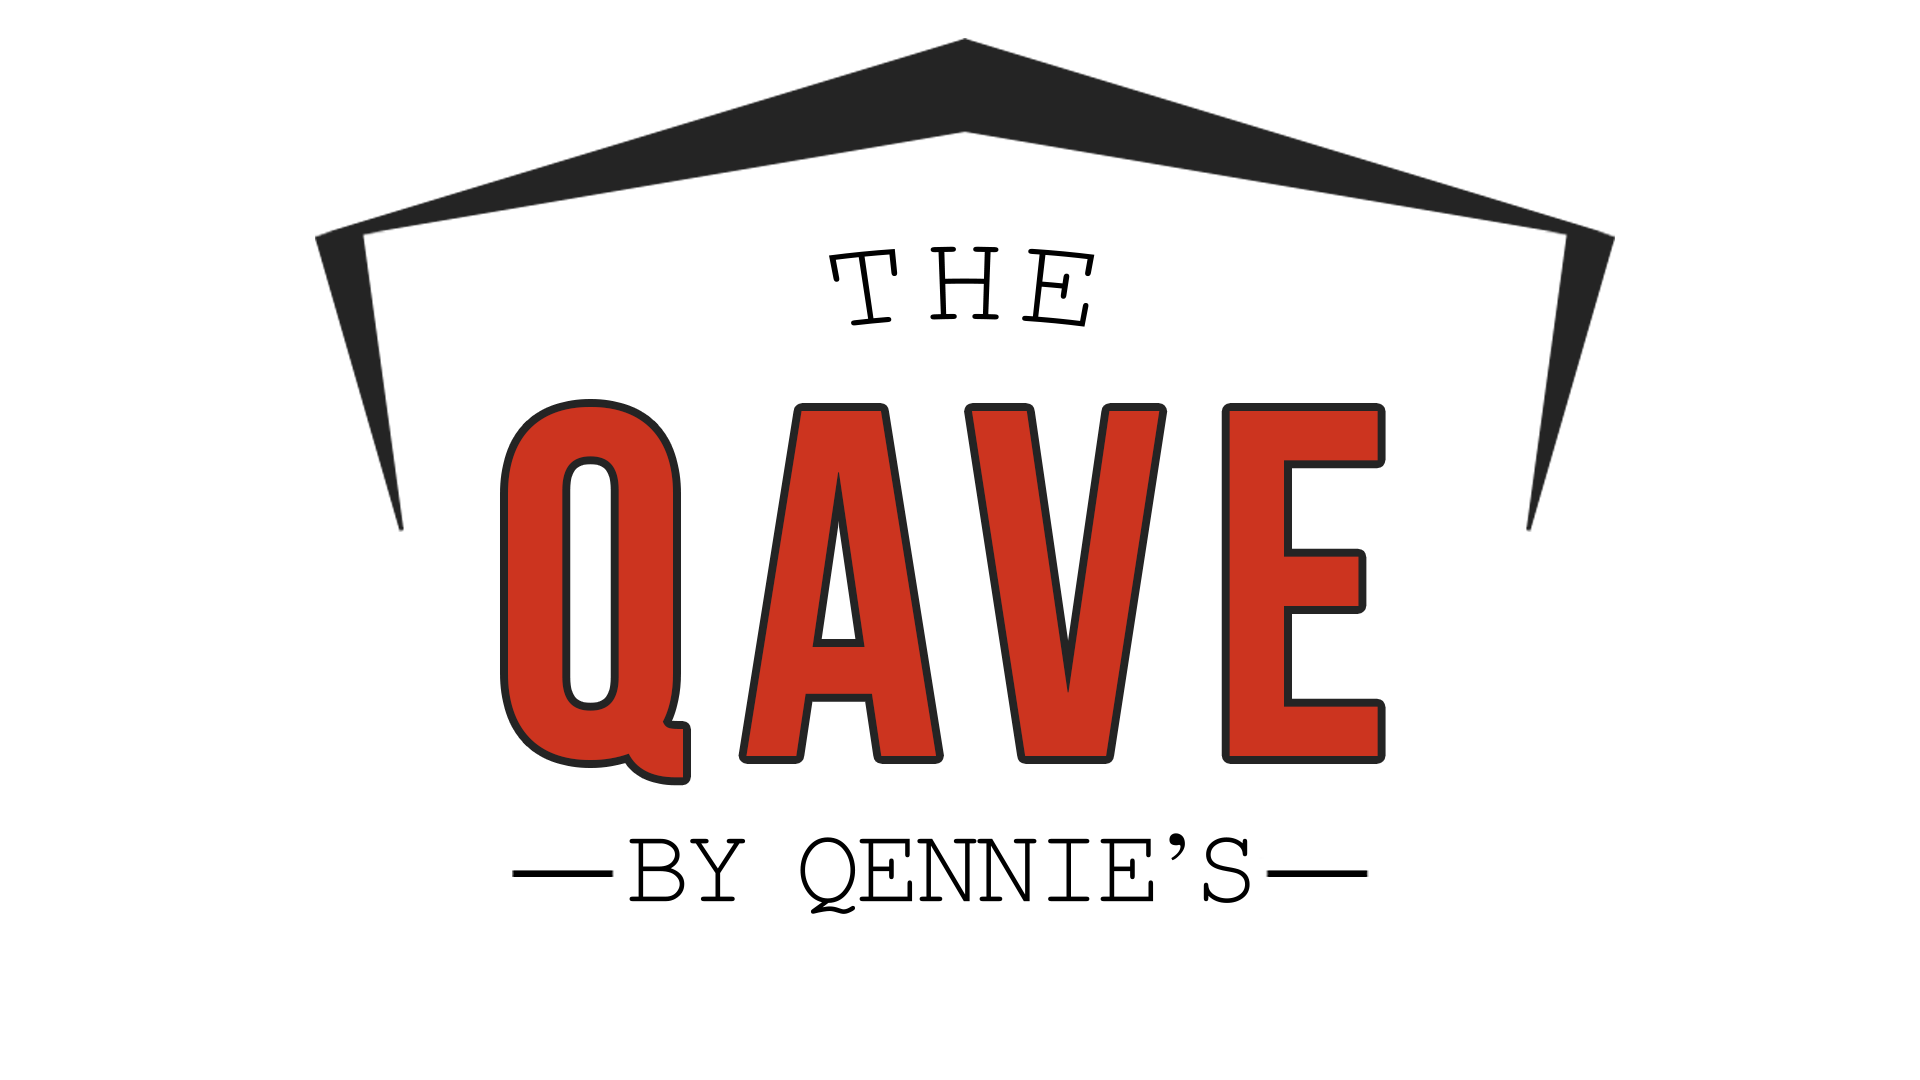 The Qave